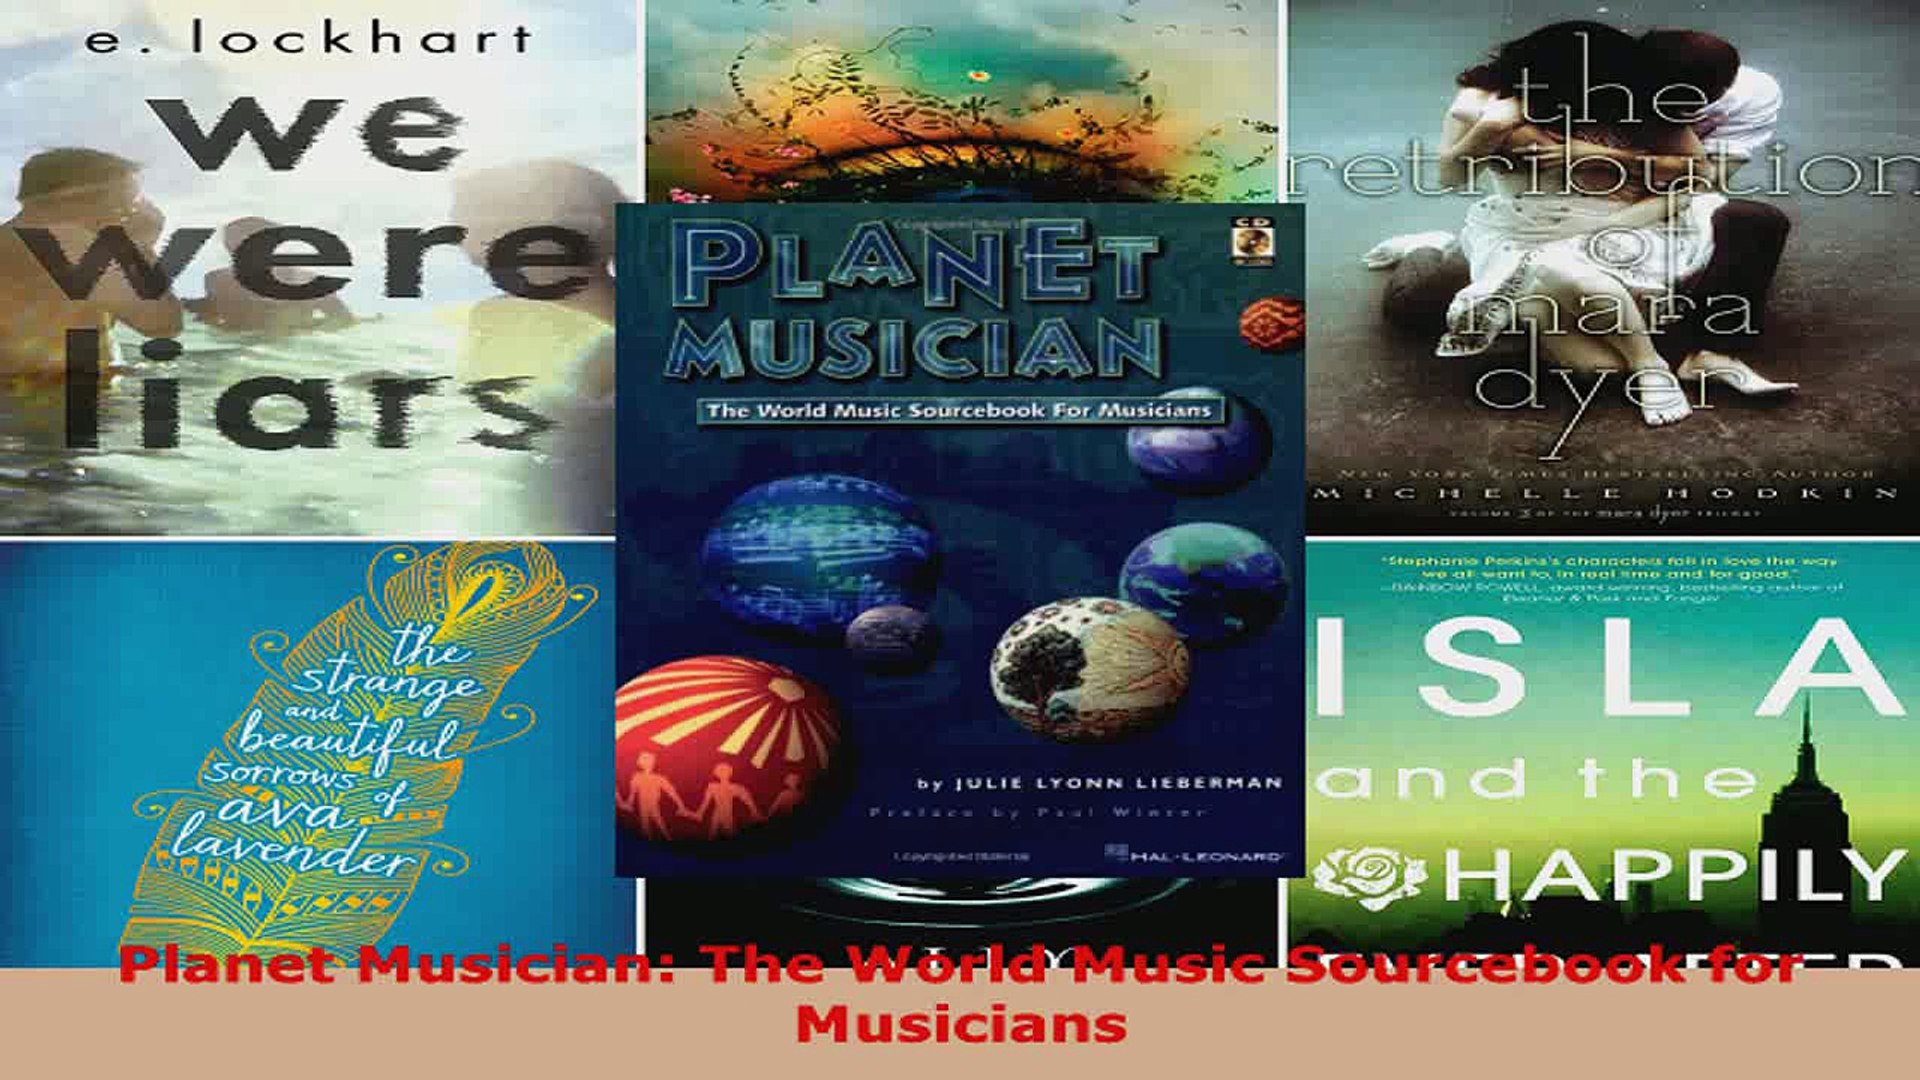 Read  Planet Musician The World Music Sourcebook for Musicians Ebook Free